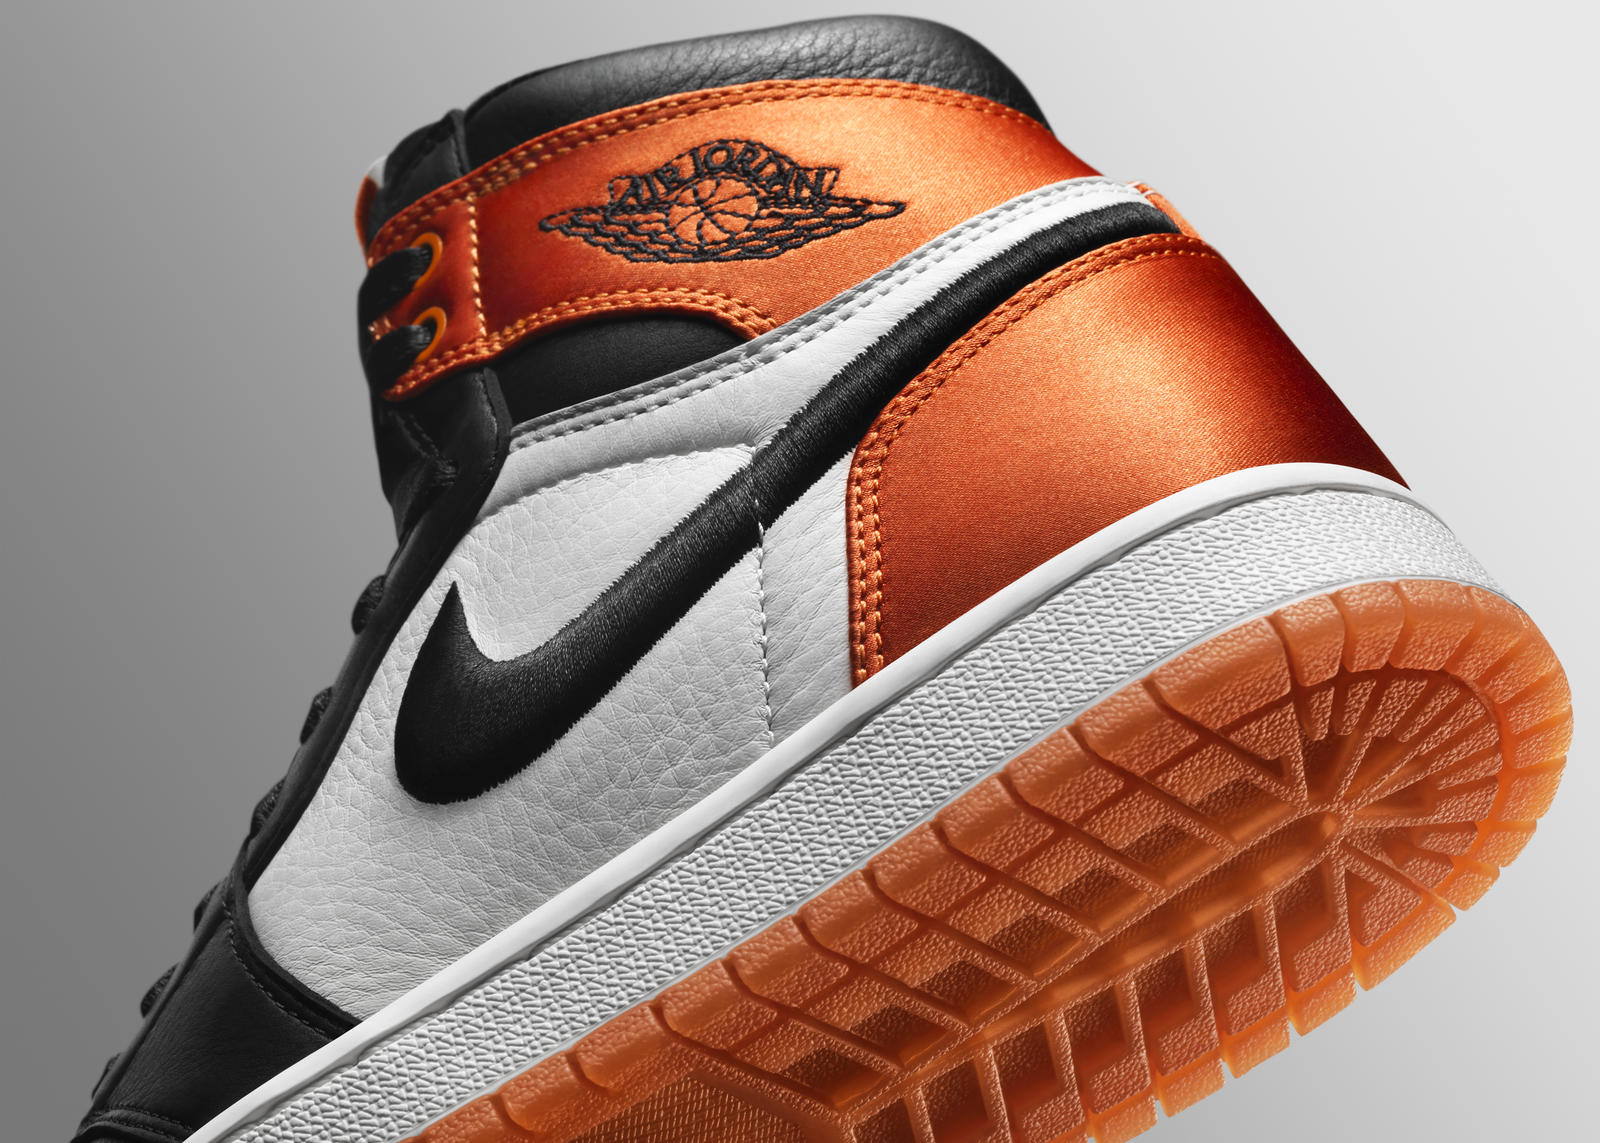 492c0e2778d24f ... Satin Shattered Backboard. Summer Heat  Women s Air Jordan Is 35